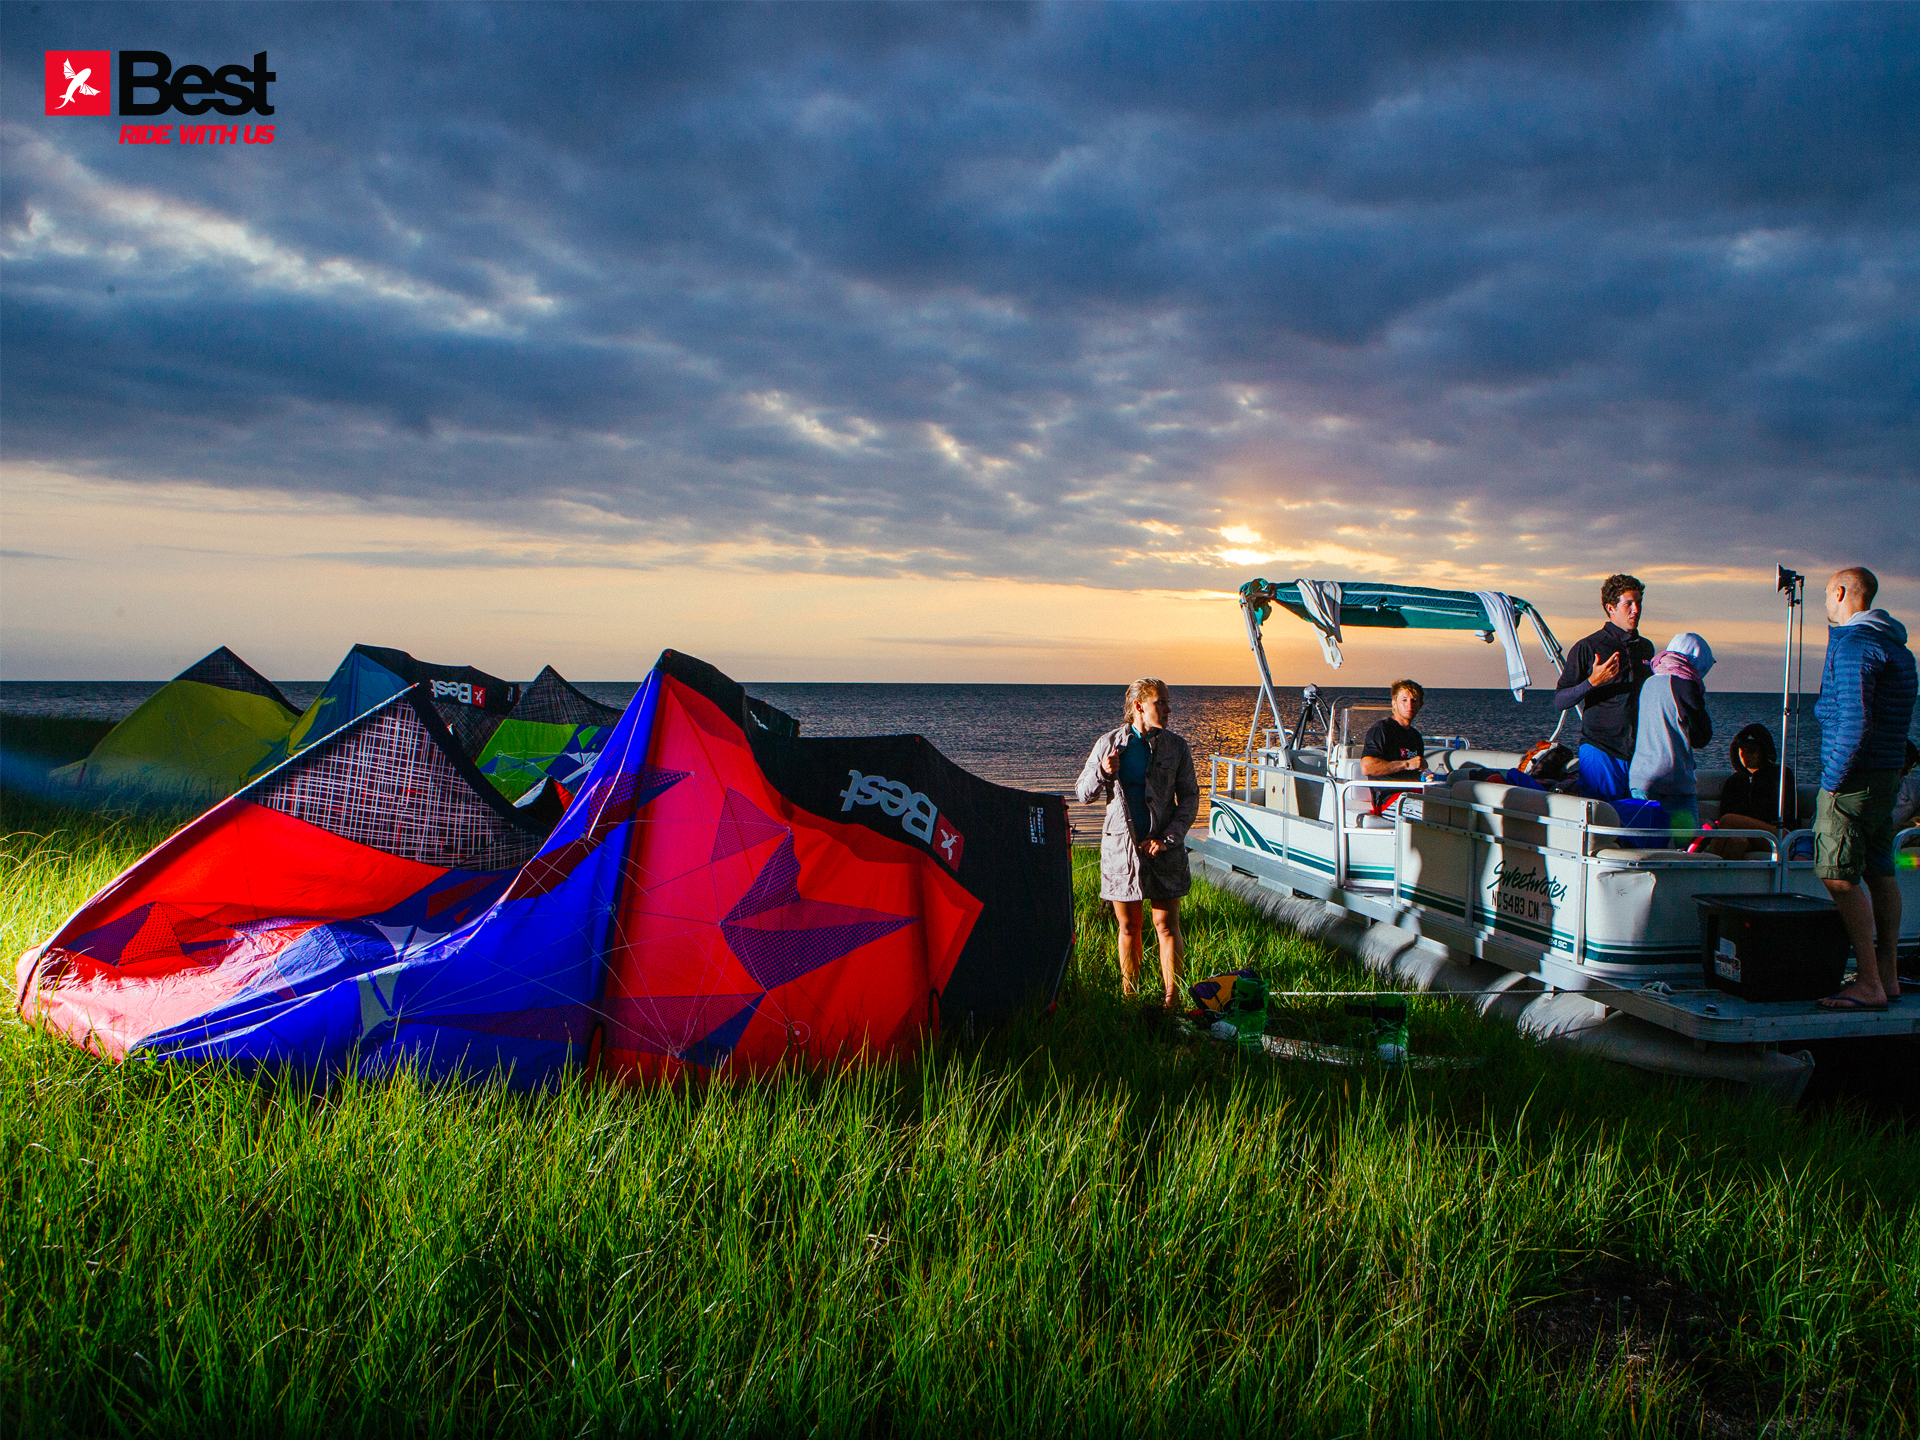 kitesurf wallpaper image - The Best kiteboarding crew chilling out at Cape Hatteras after a day on the water - in resolution: Standard 4:3 1920 X 1440